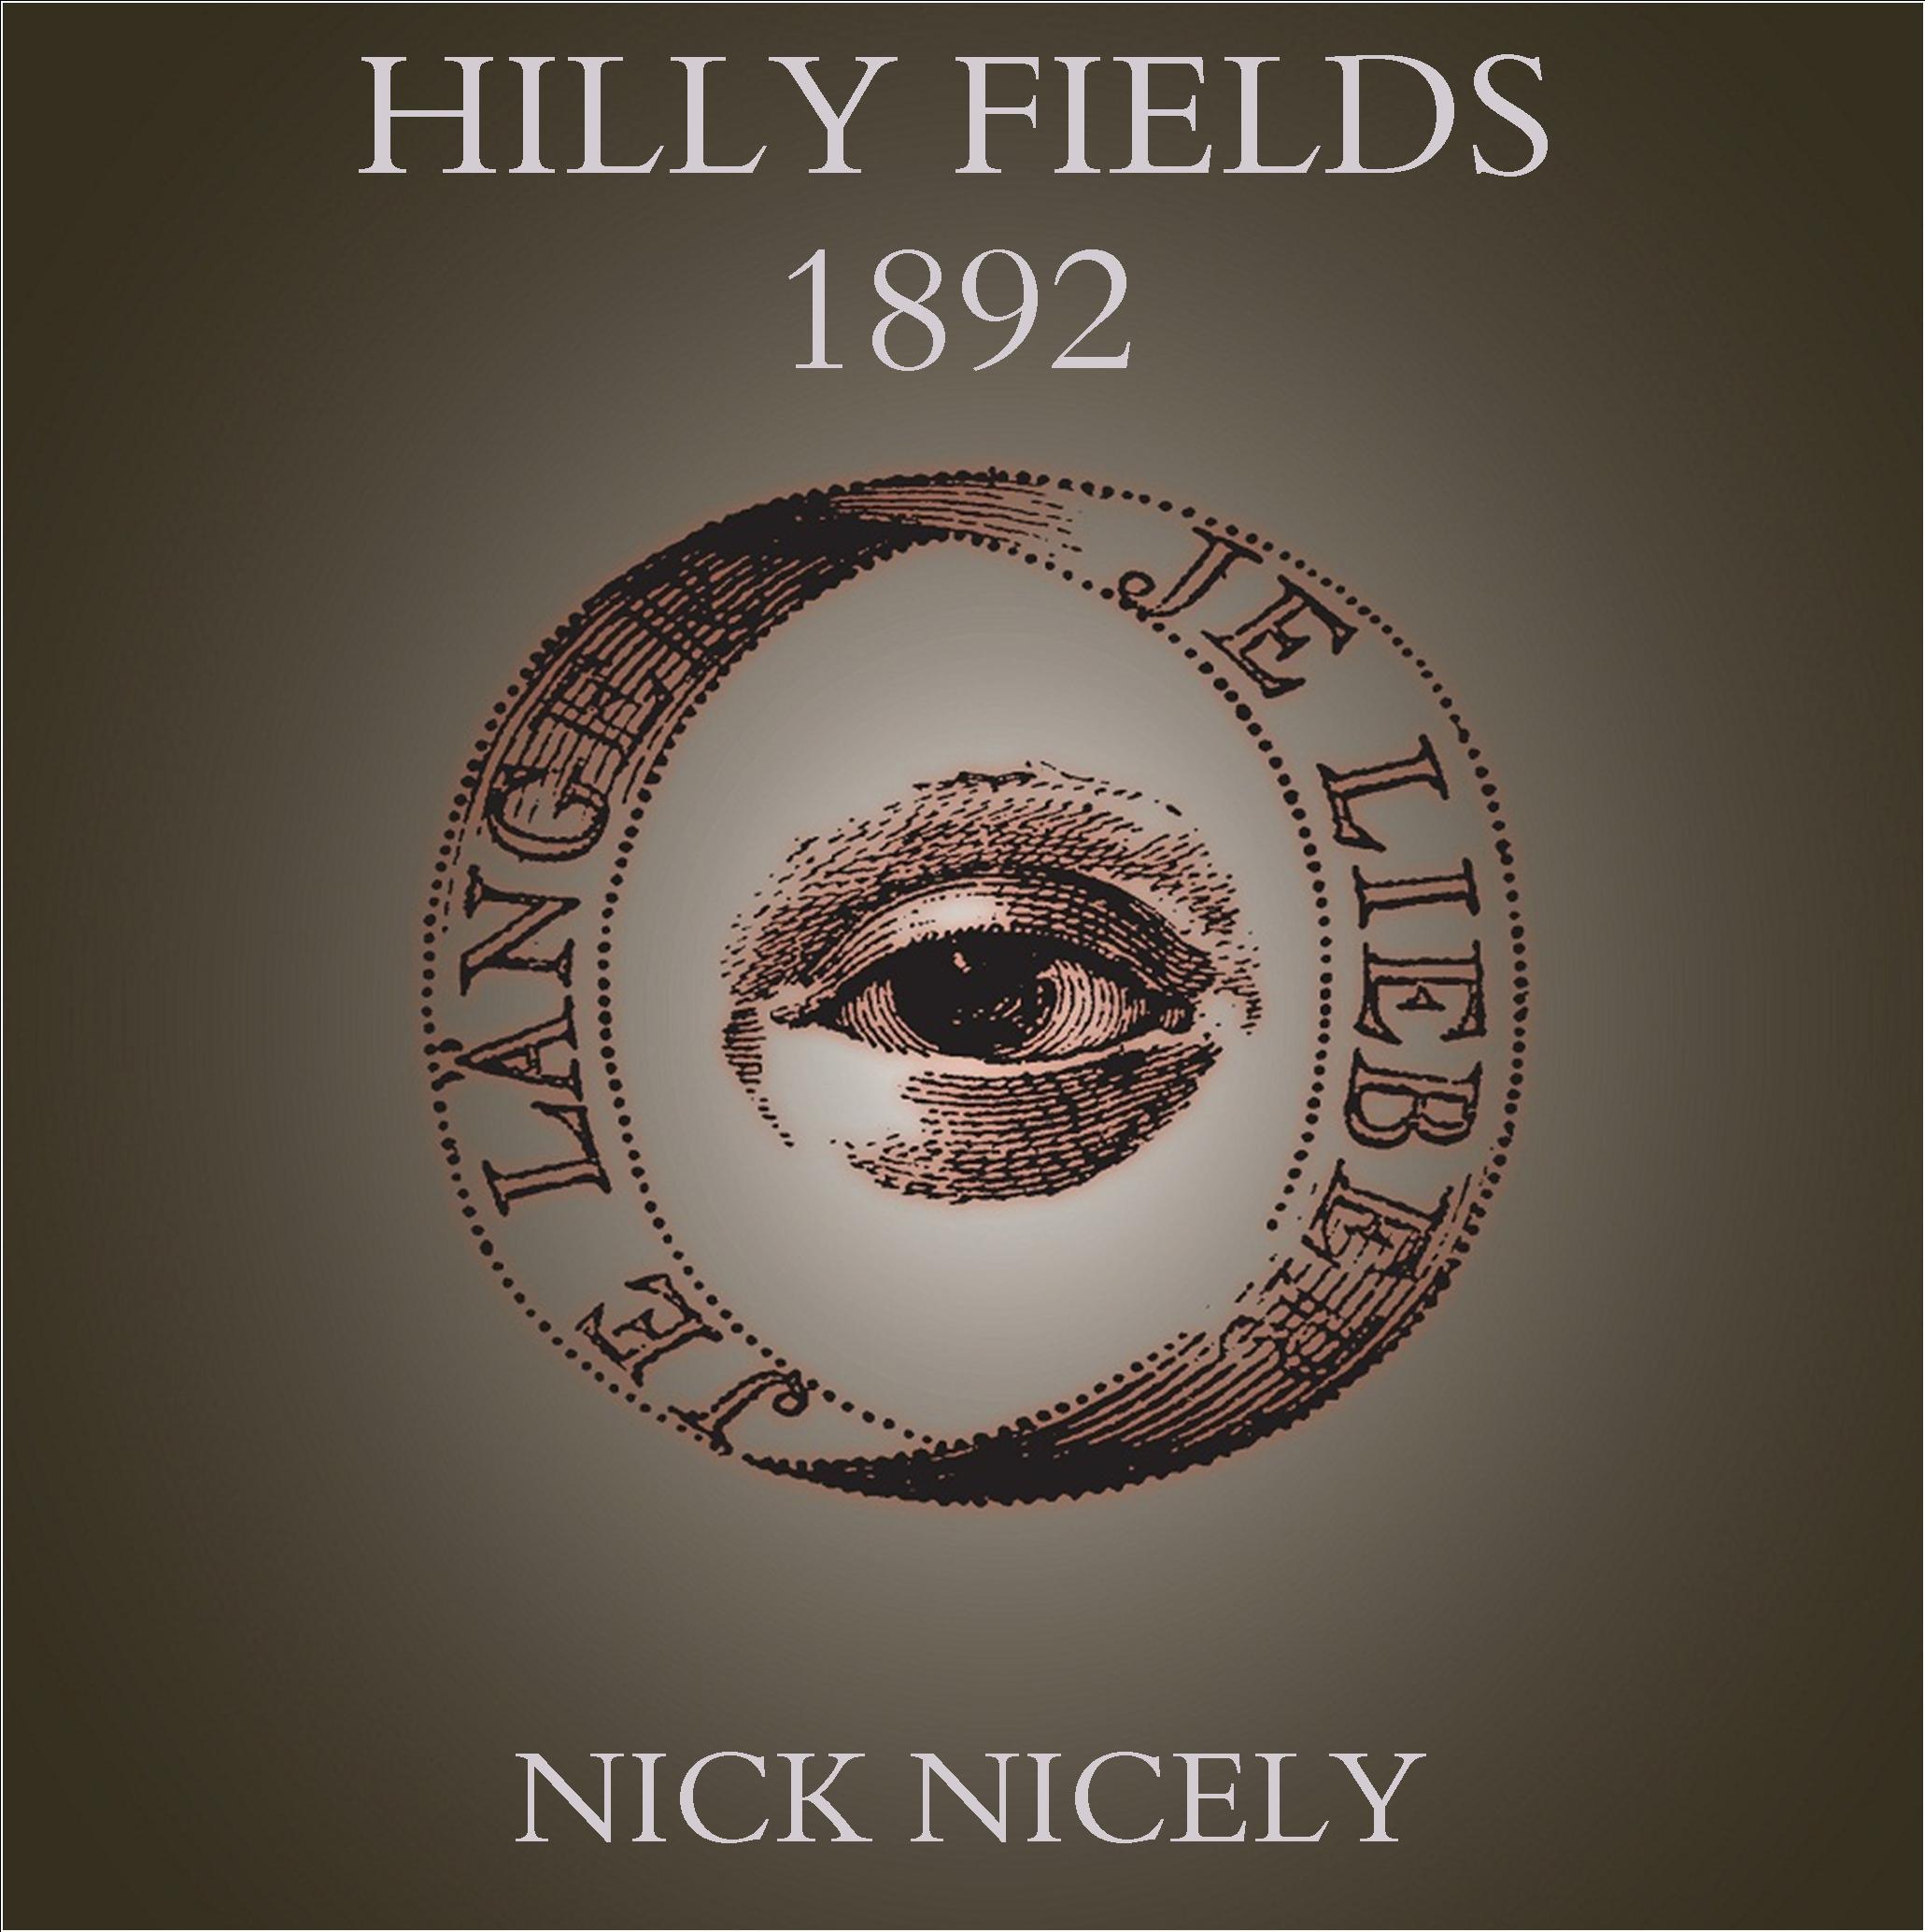 Nick Nicely — Hilly Fields (1892)